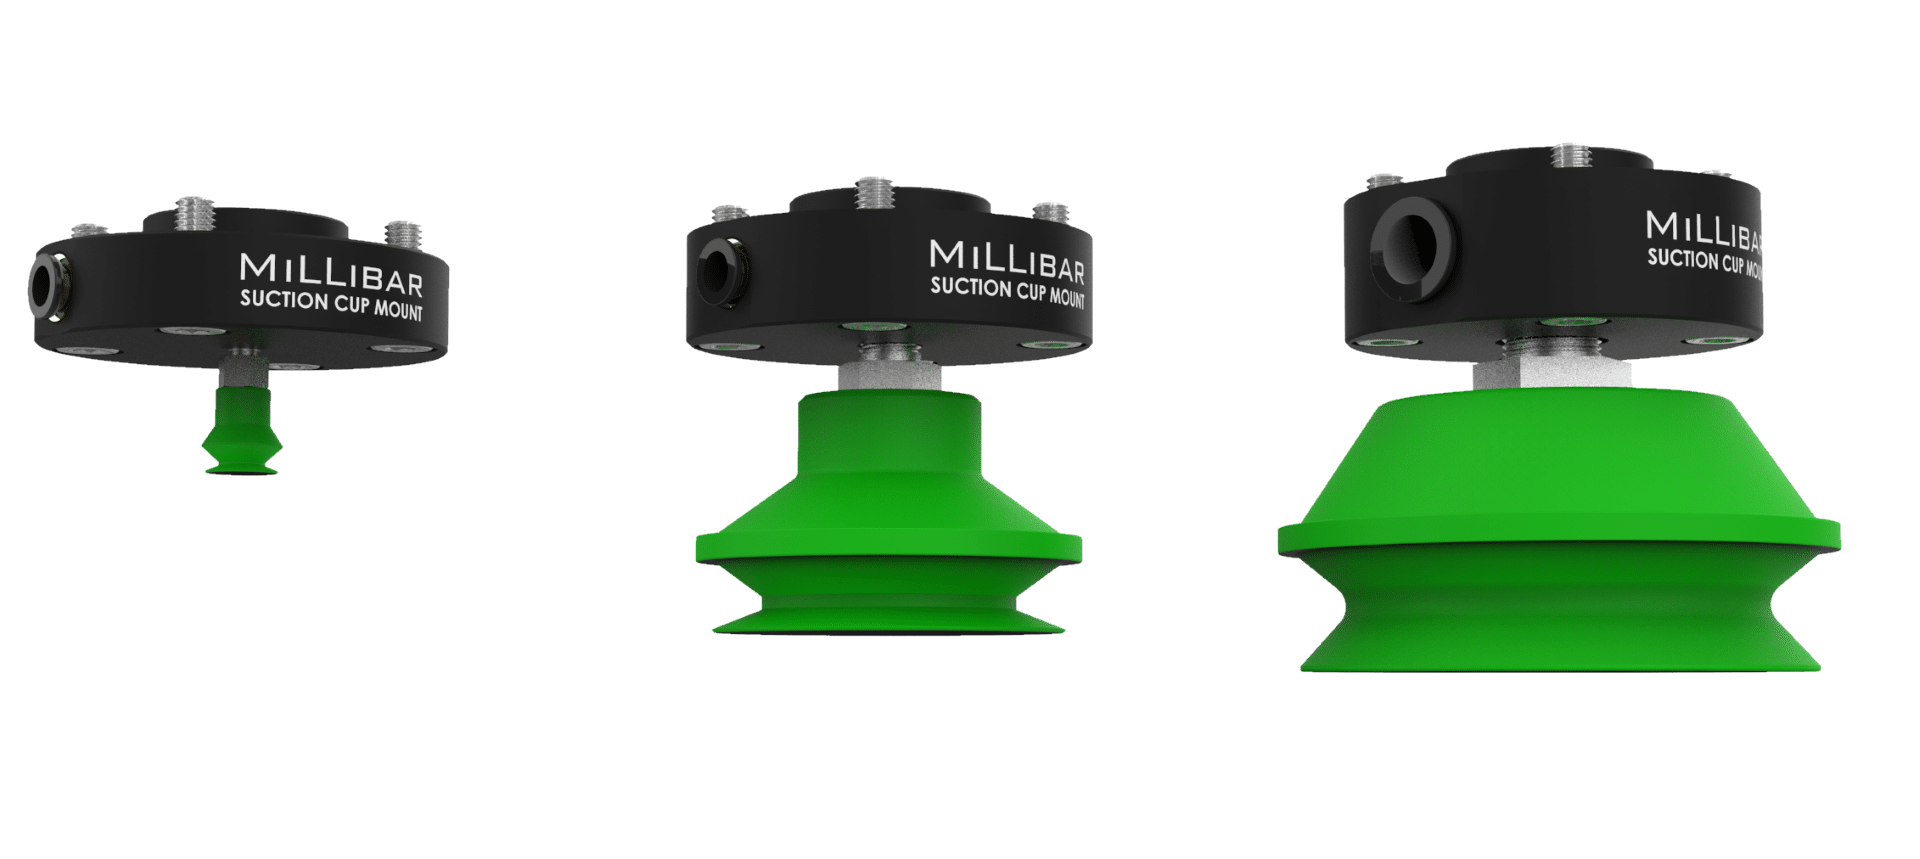 suction cup mounts for collaborative robots